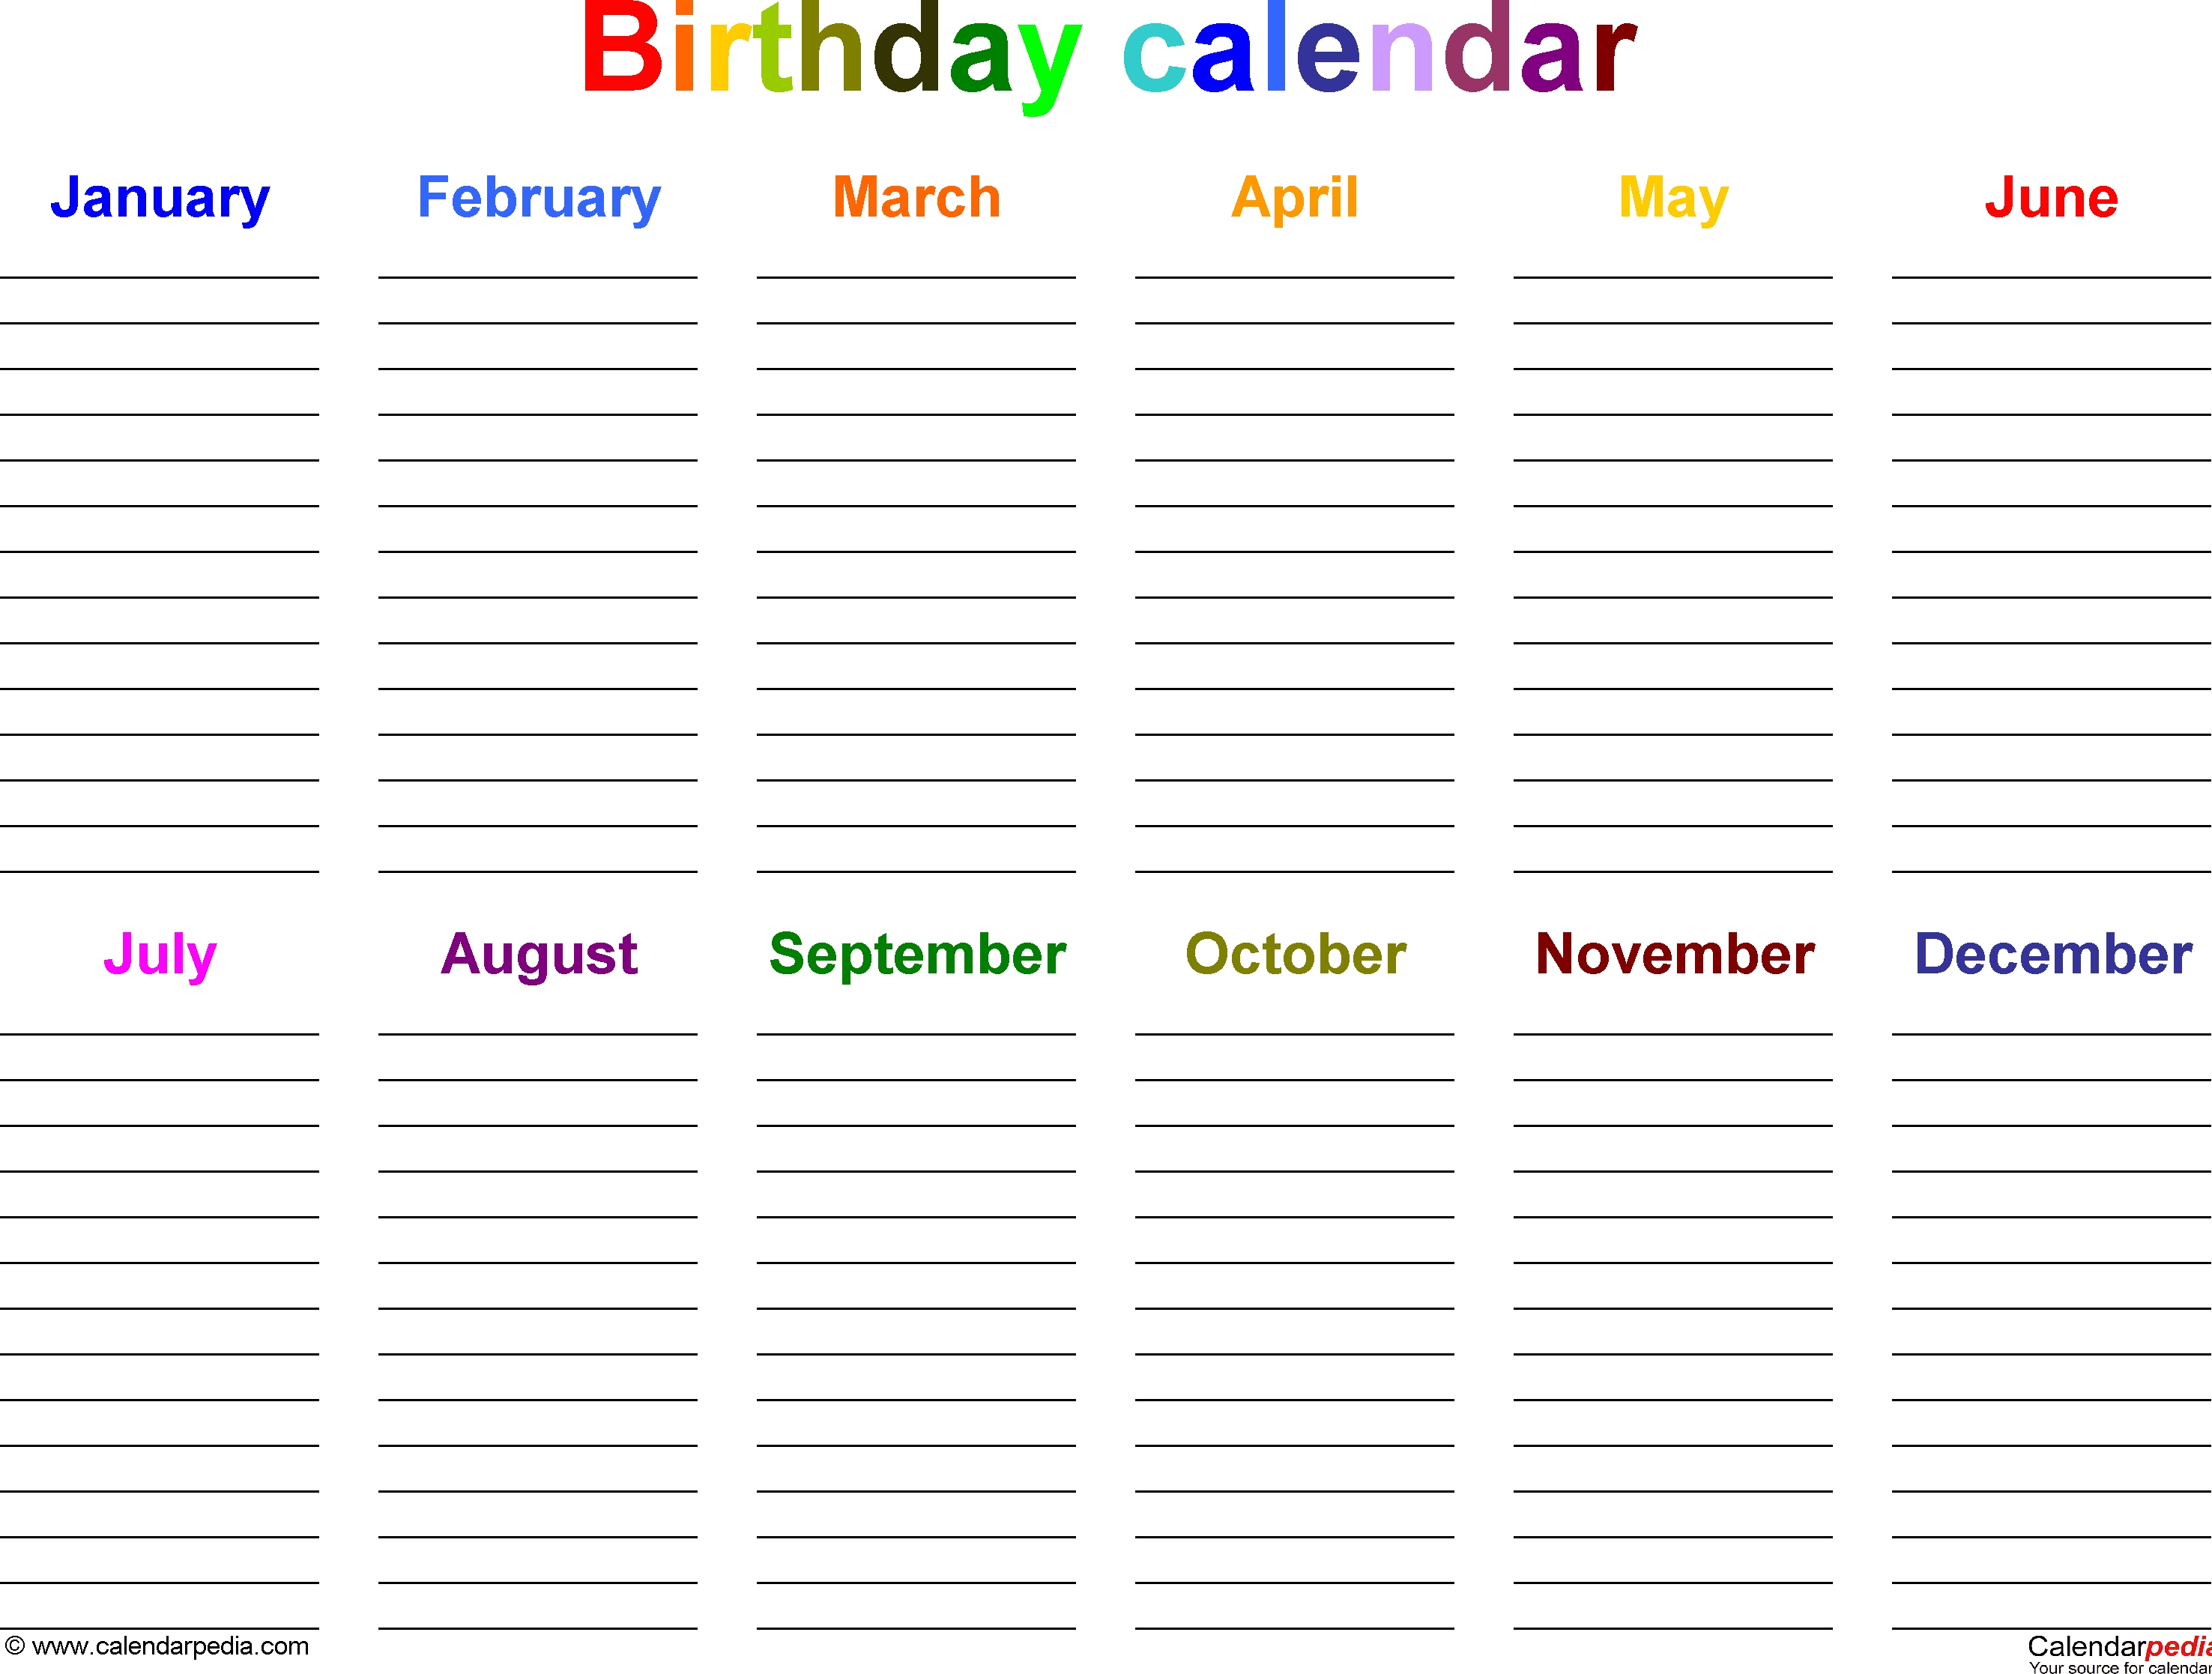 Excel Template For Birthday Calendar In Color (Landscape